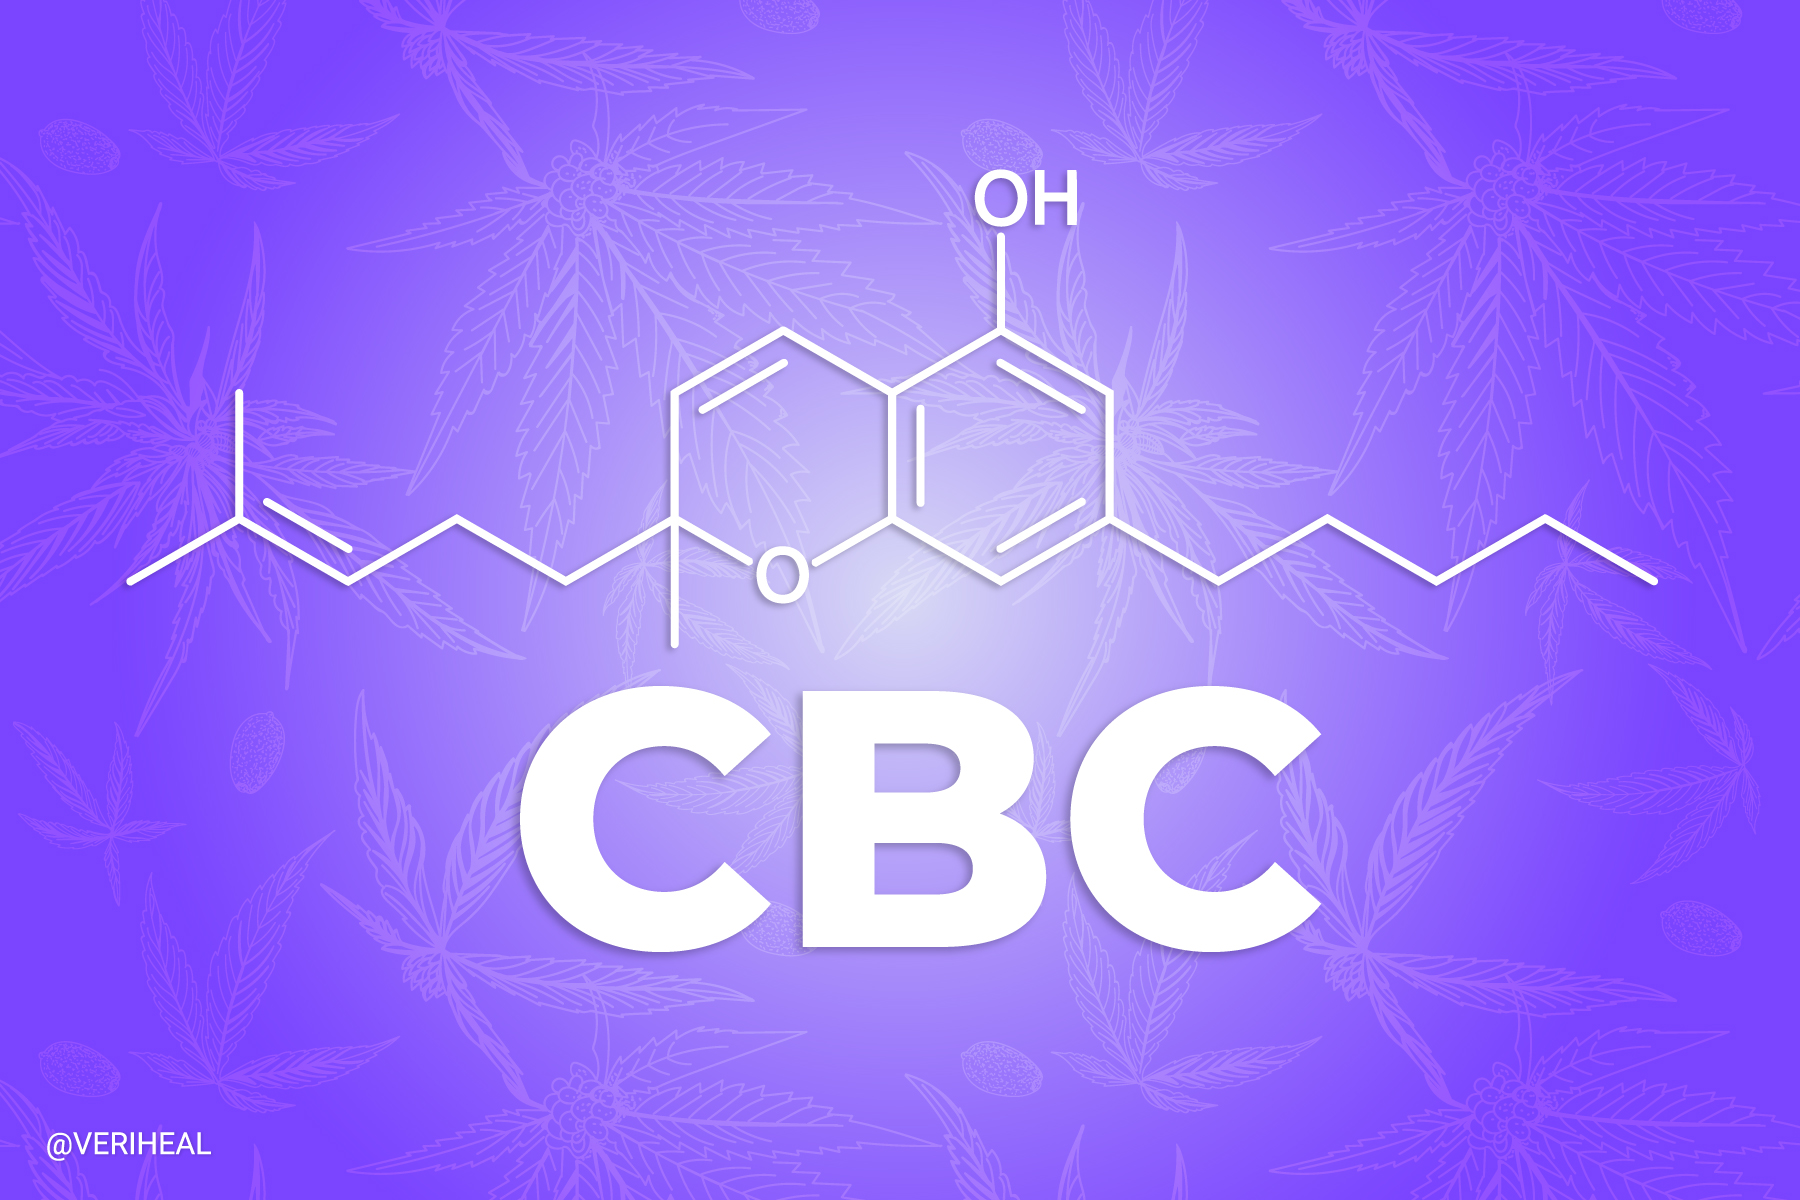 Let's Explore the CBC Cannabinoid and its Therapeutic Benefits